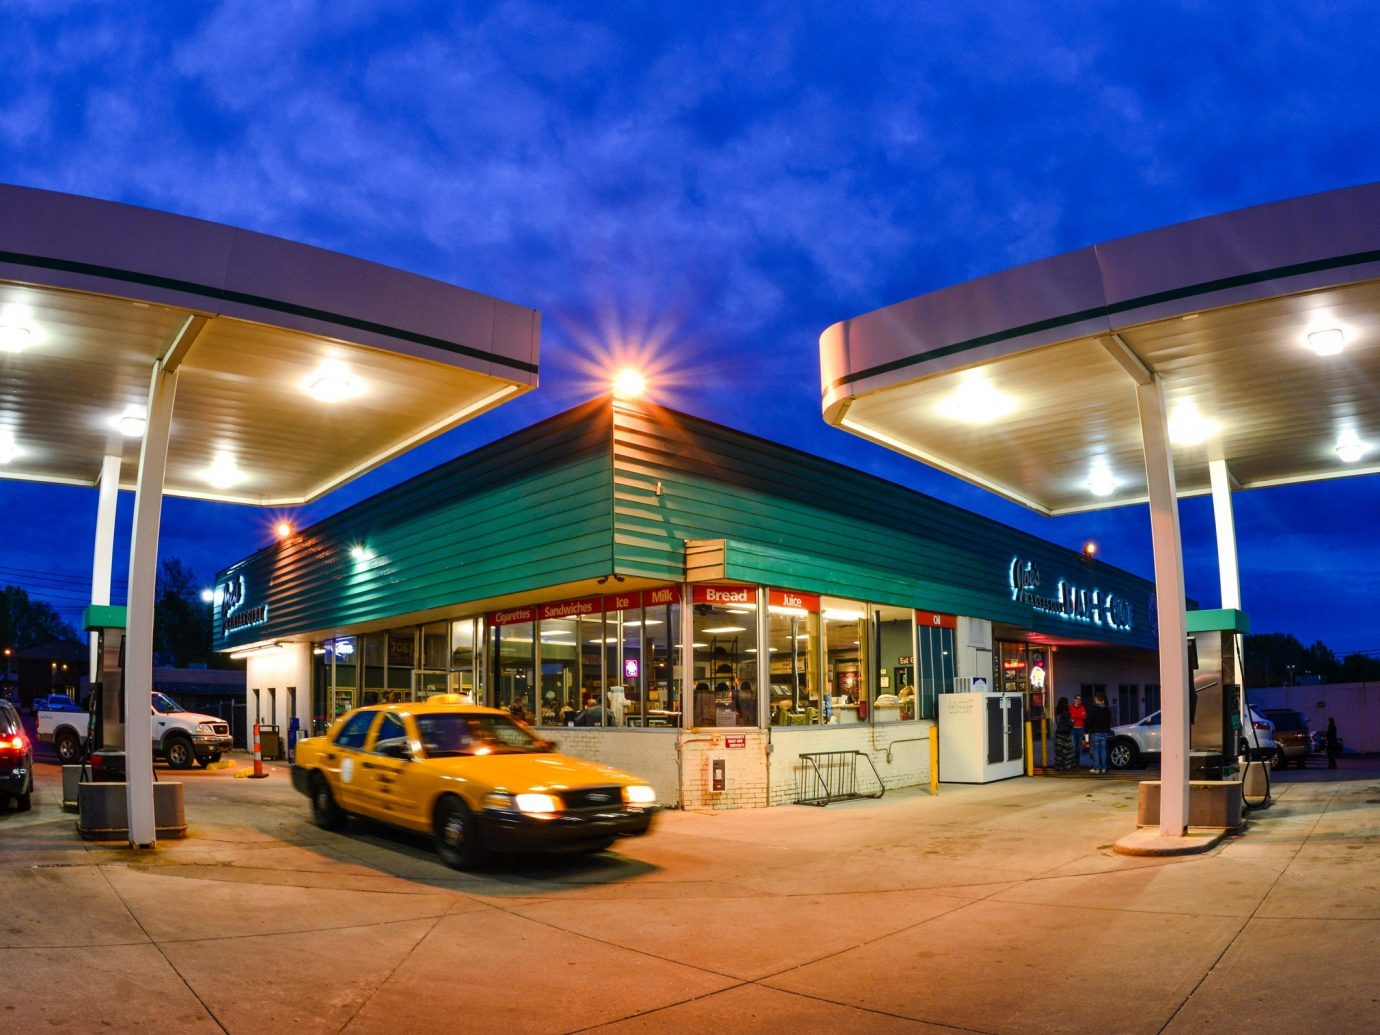 City Kansas City Midwest Trip Ideas sky outdoor filling station mixed use real estate night building evening sign